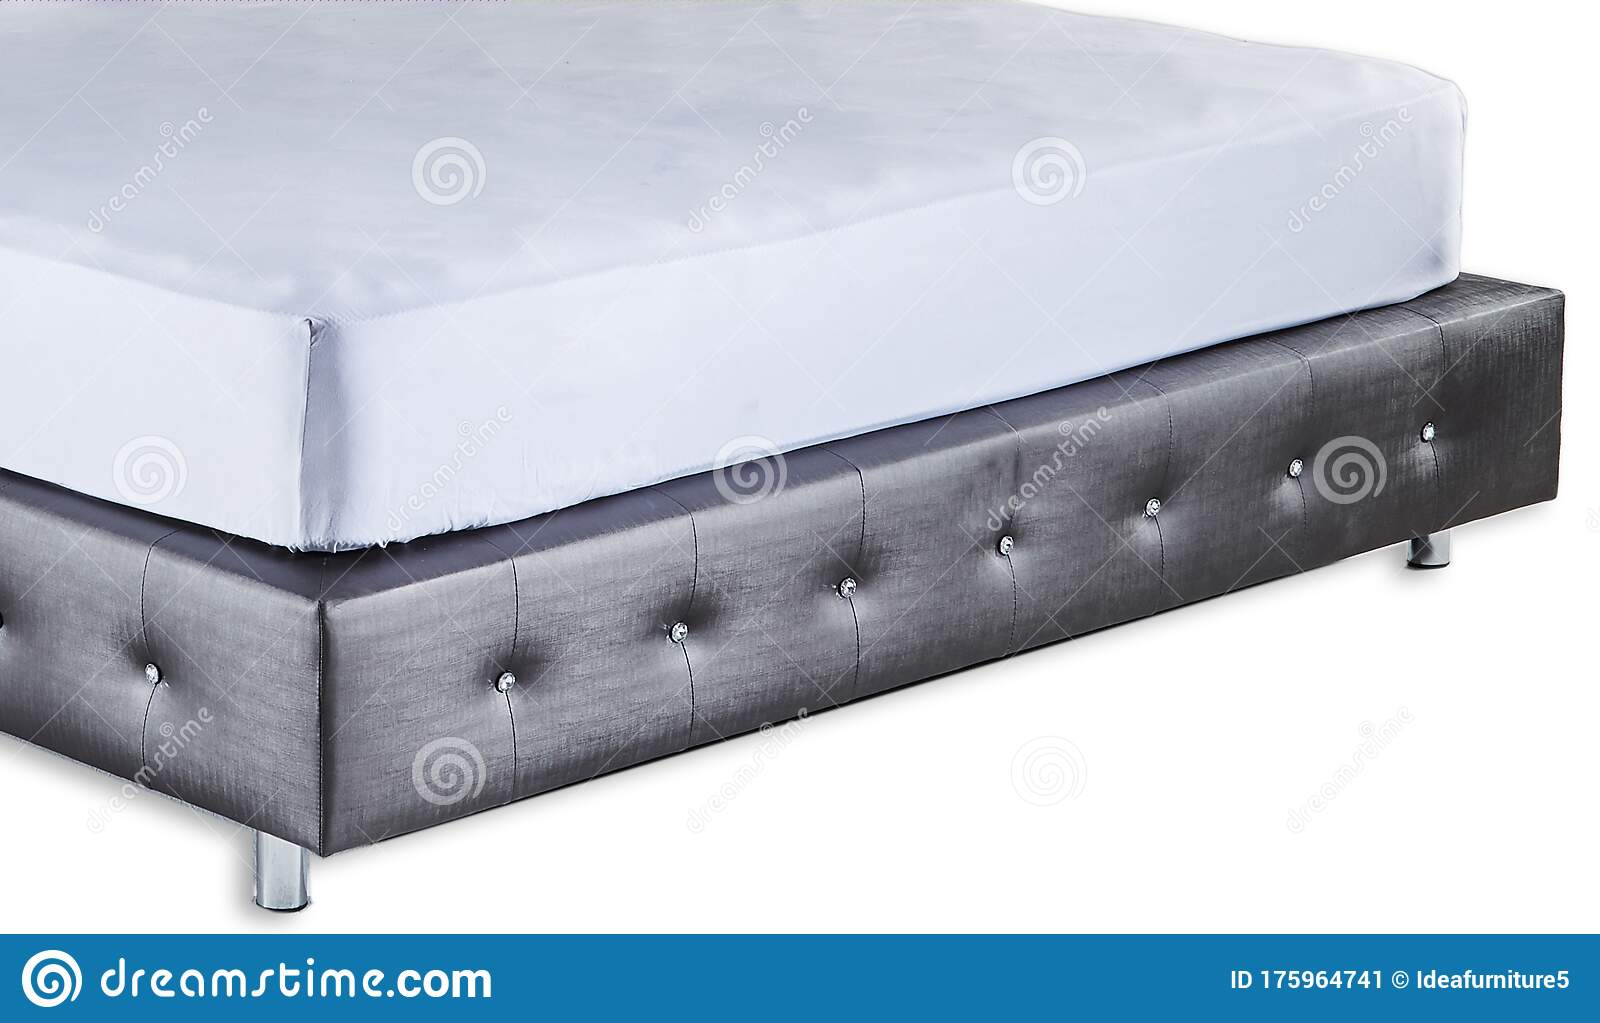 Upholstered Bed Isolated On White Background King Size Luxury Bed With Mattress And Pillows Bedroom Furniture Stock Image Image Of Hotel Home 175964741